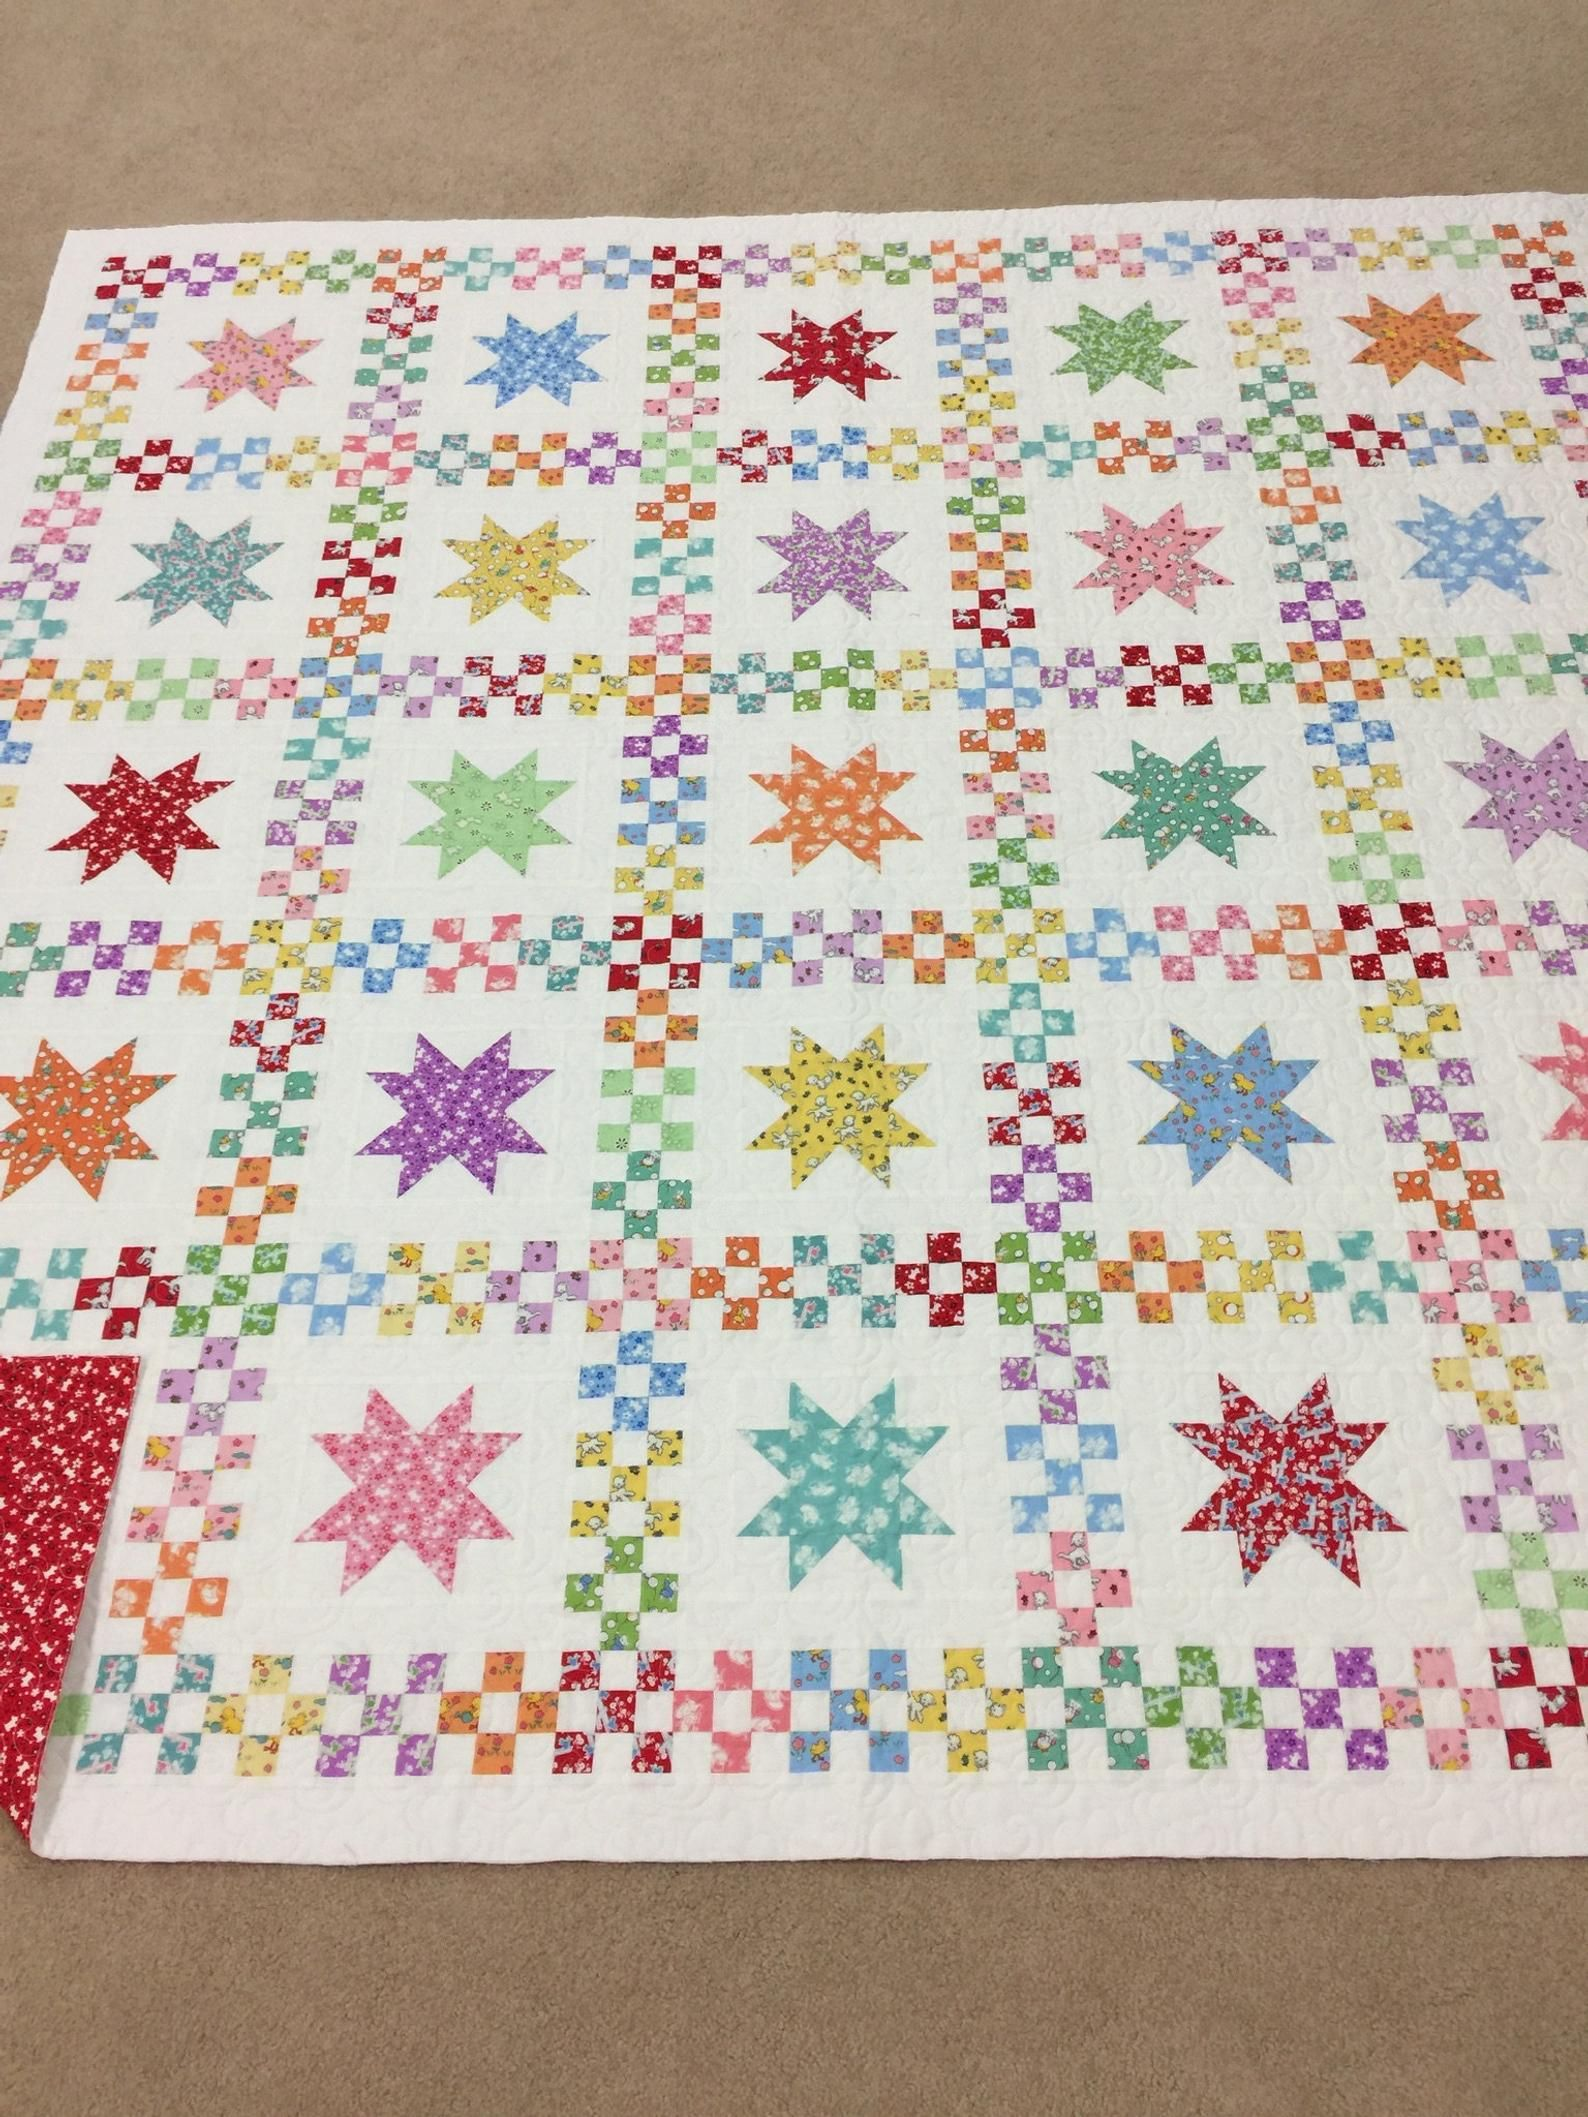 Sweet Dreams PDF Quilt Pattern is part of Quilt patterns, Star quilt patterns, Quilts, Pdf quilt pattern, Bright quilts, Charm quilt - 2 yard fabric for binding